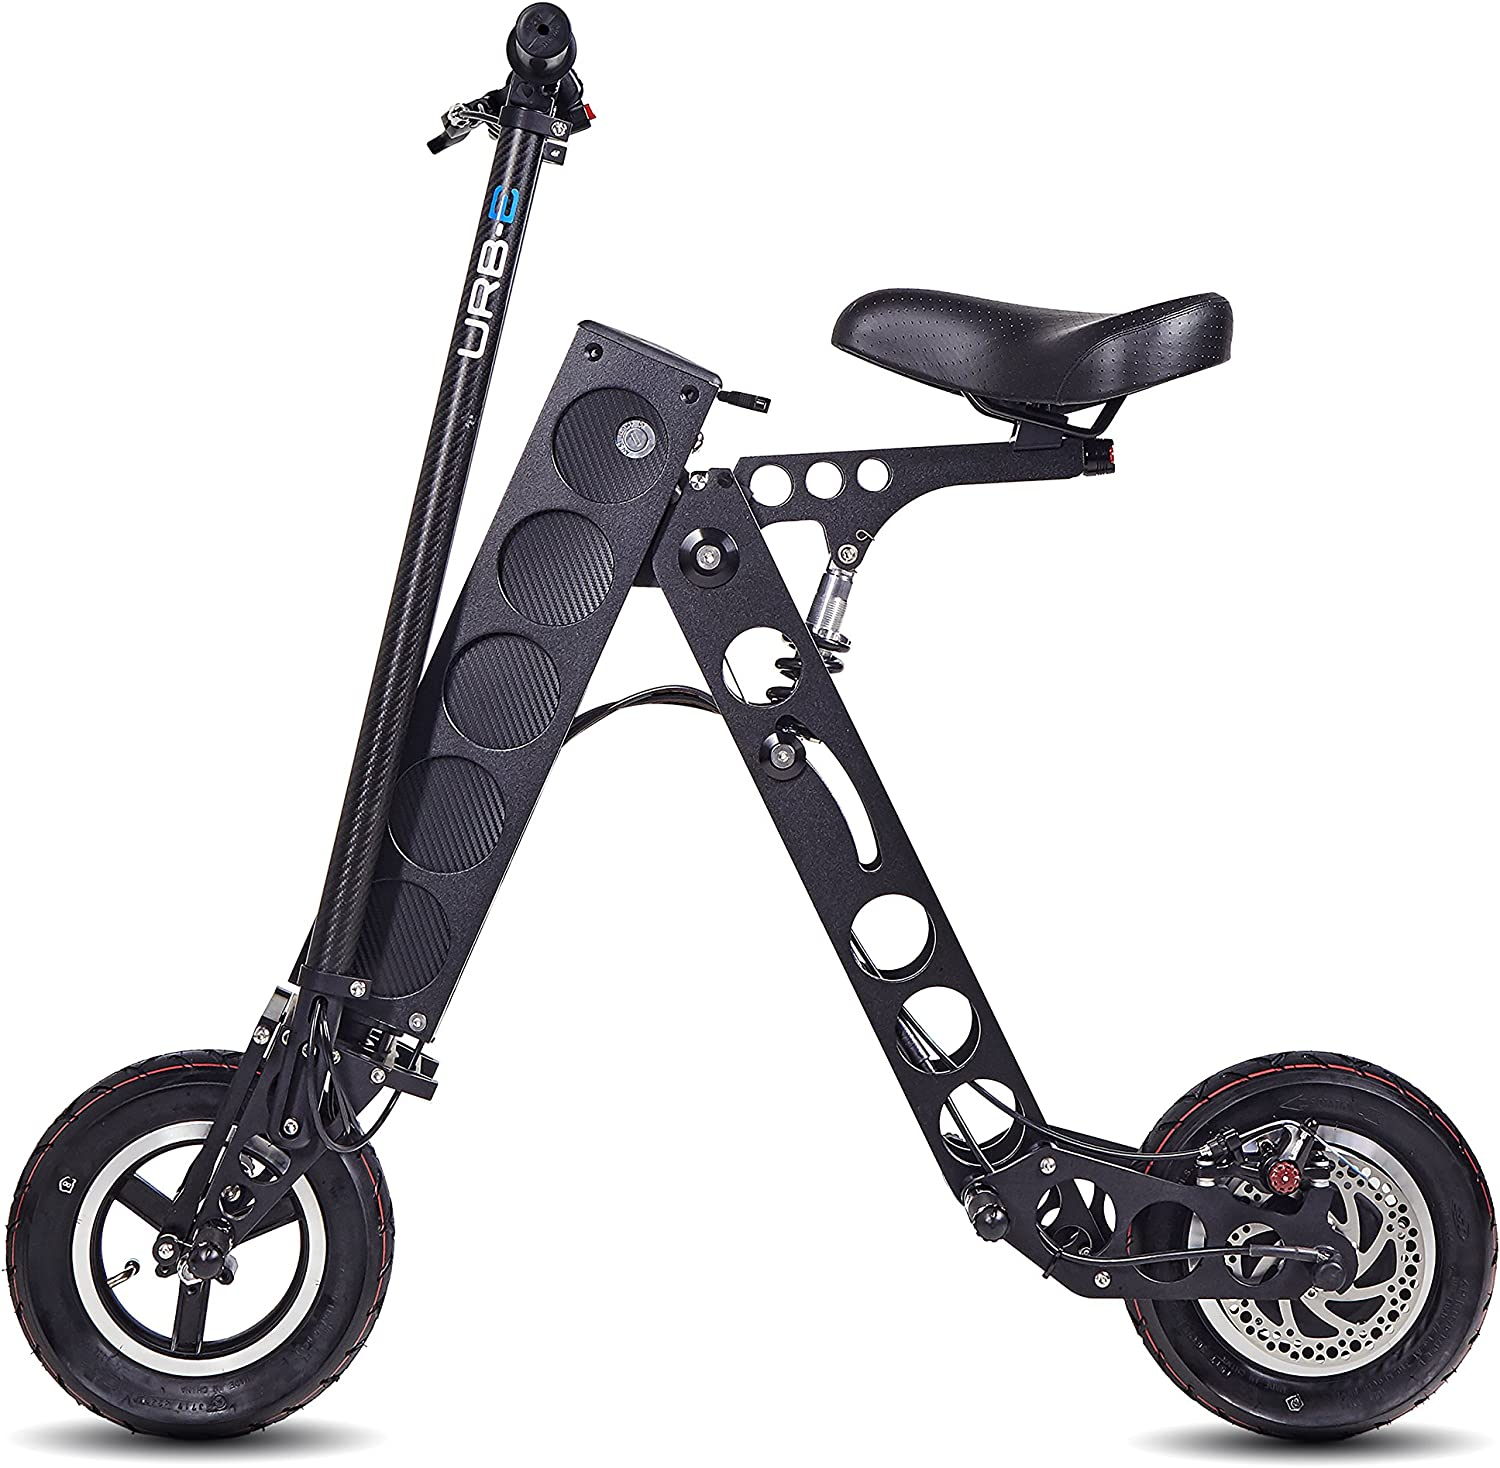 Best Reviewed Electric Scooters That Go Up To 15mph 3